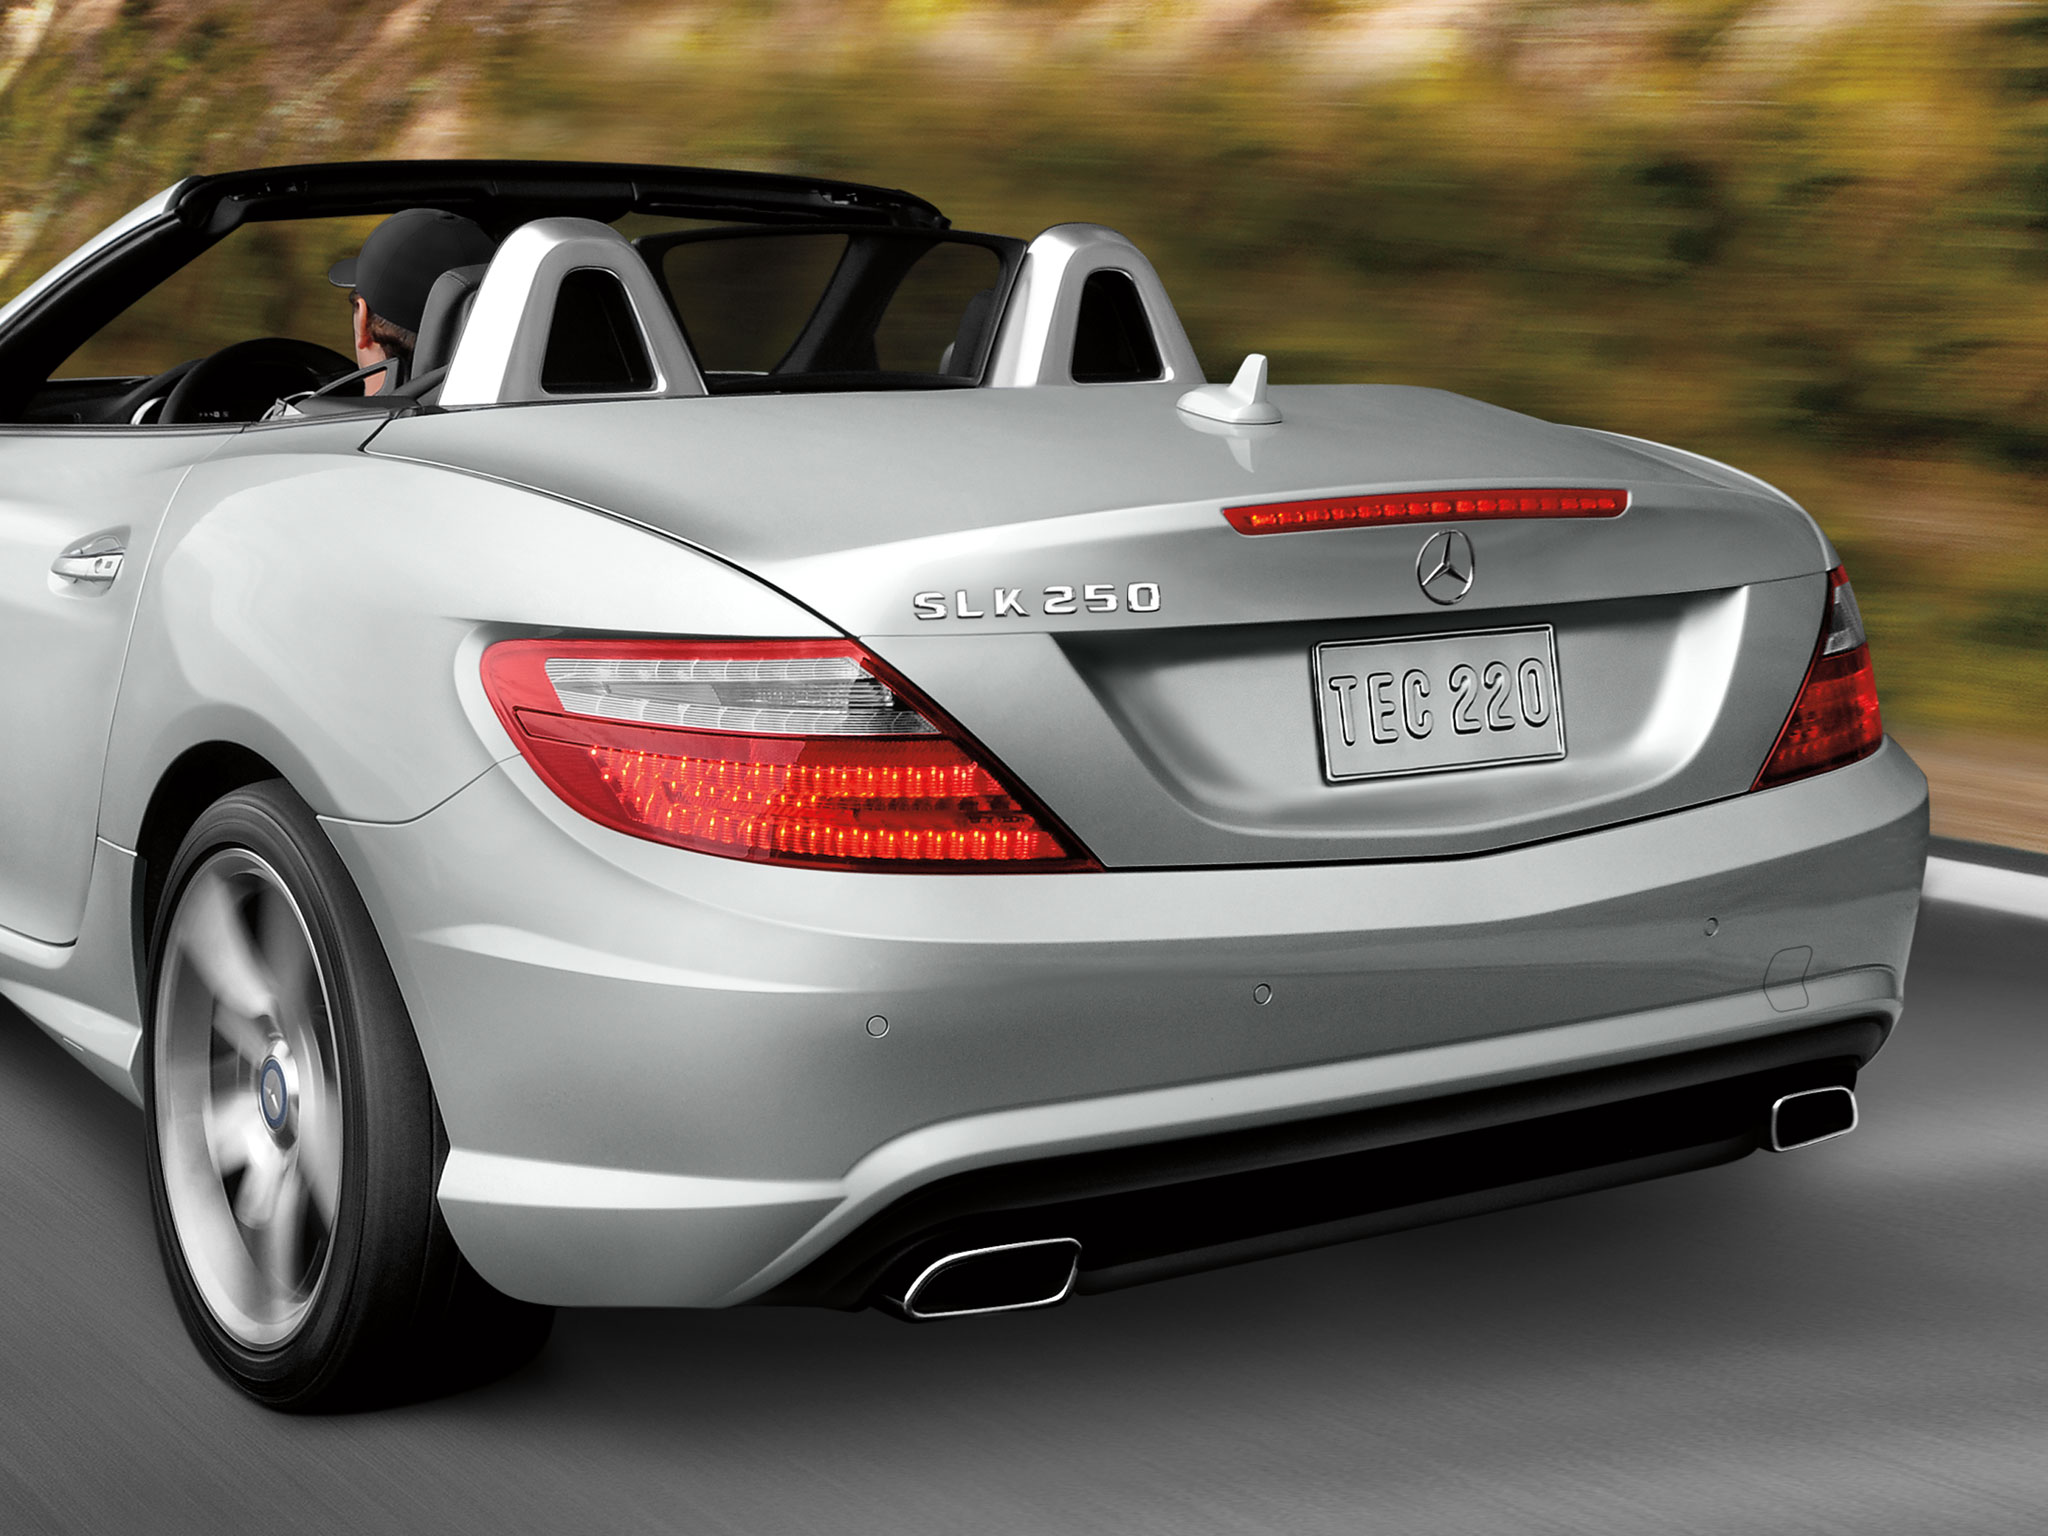 S63c4 release date price and specs for 2015 mercedes benz slk250 price